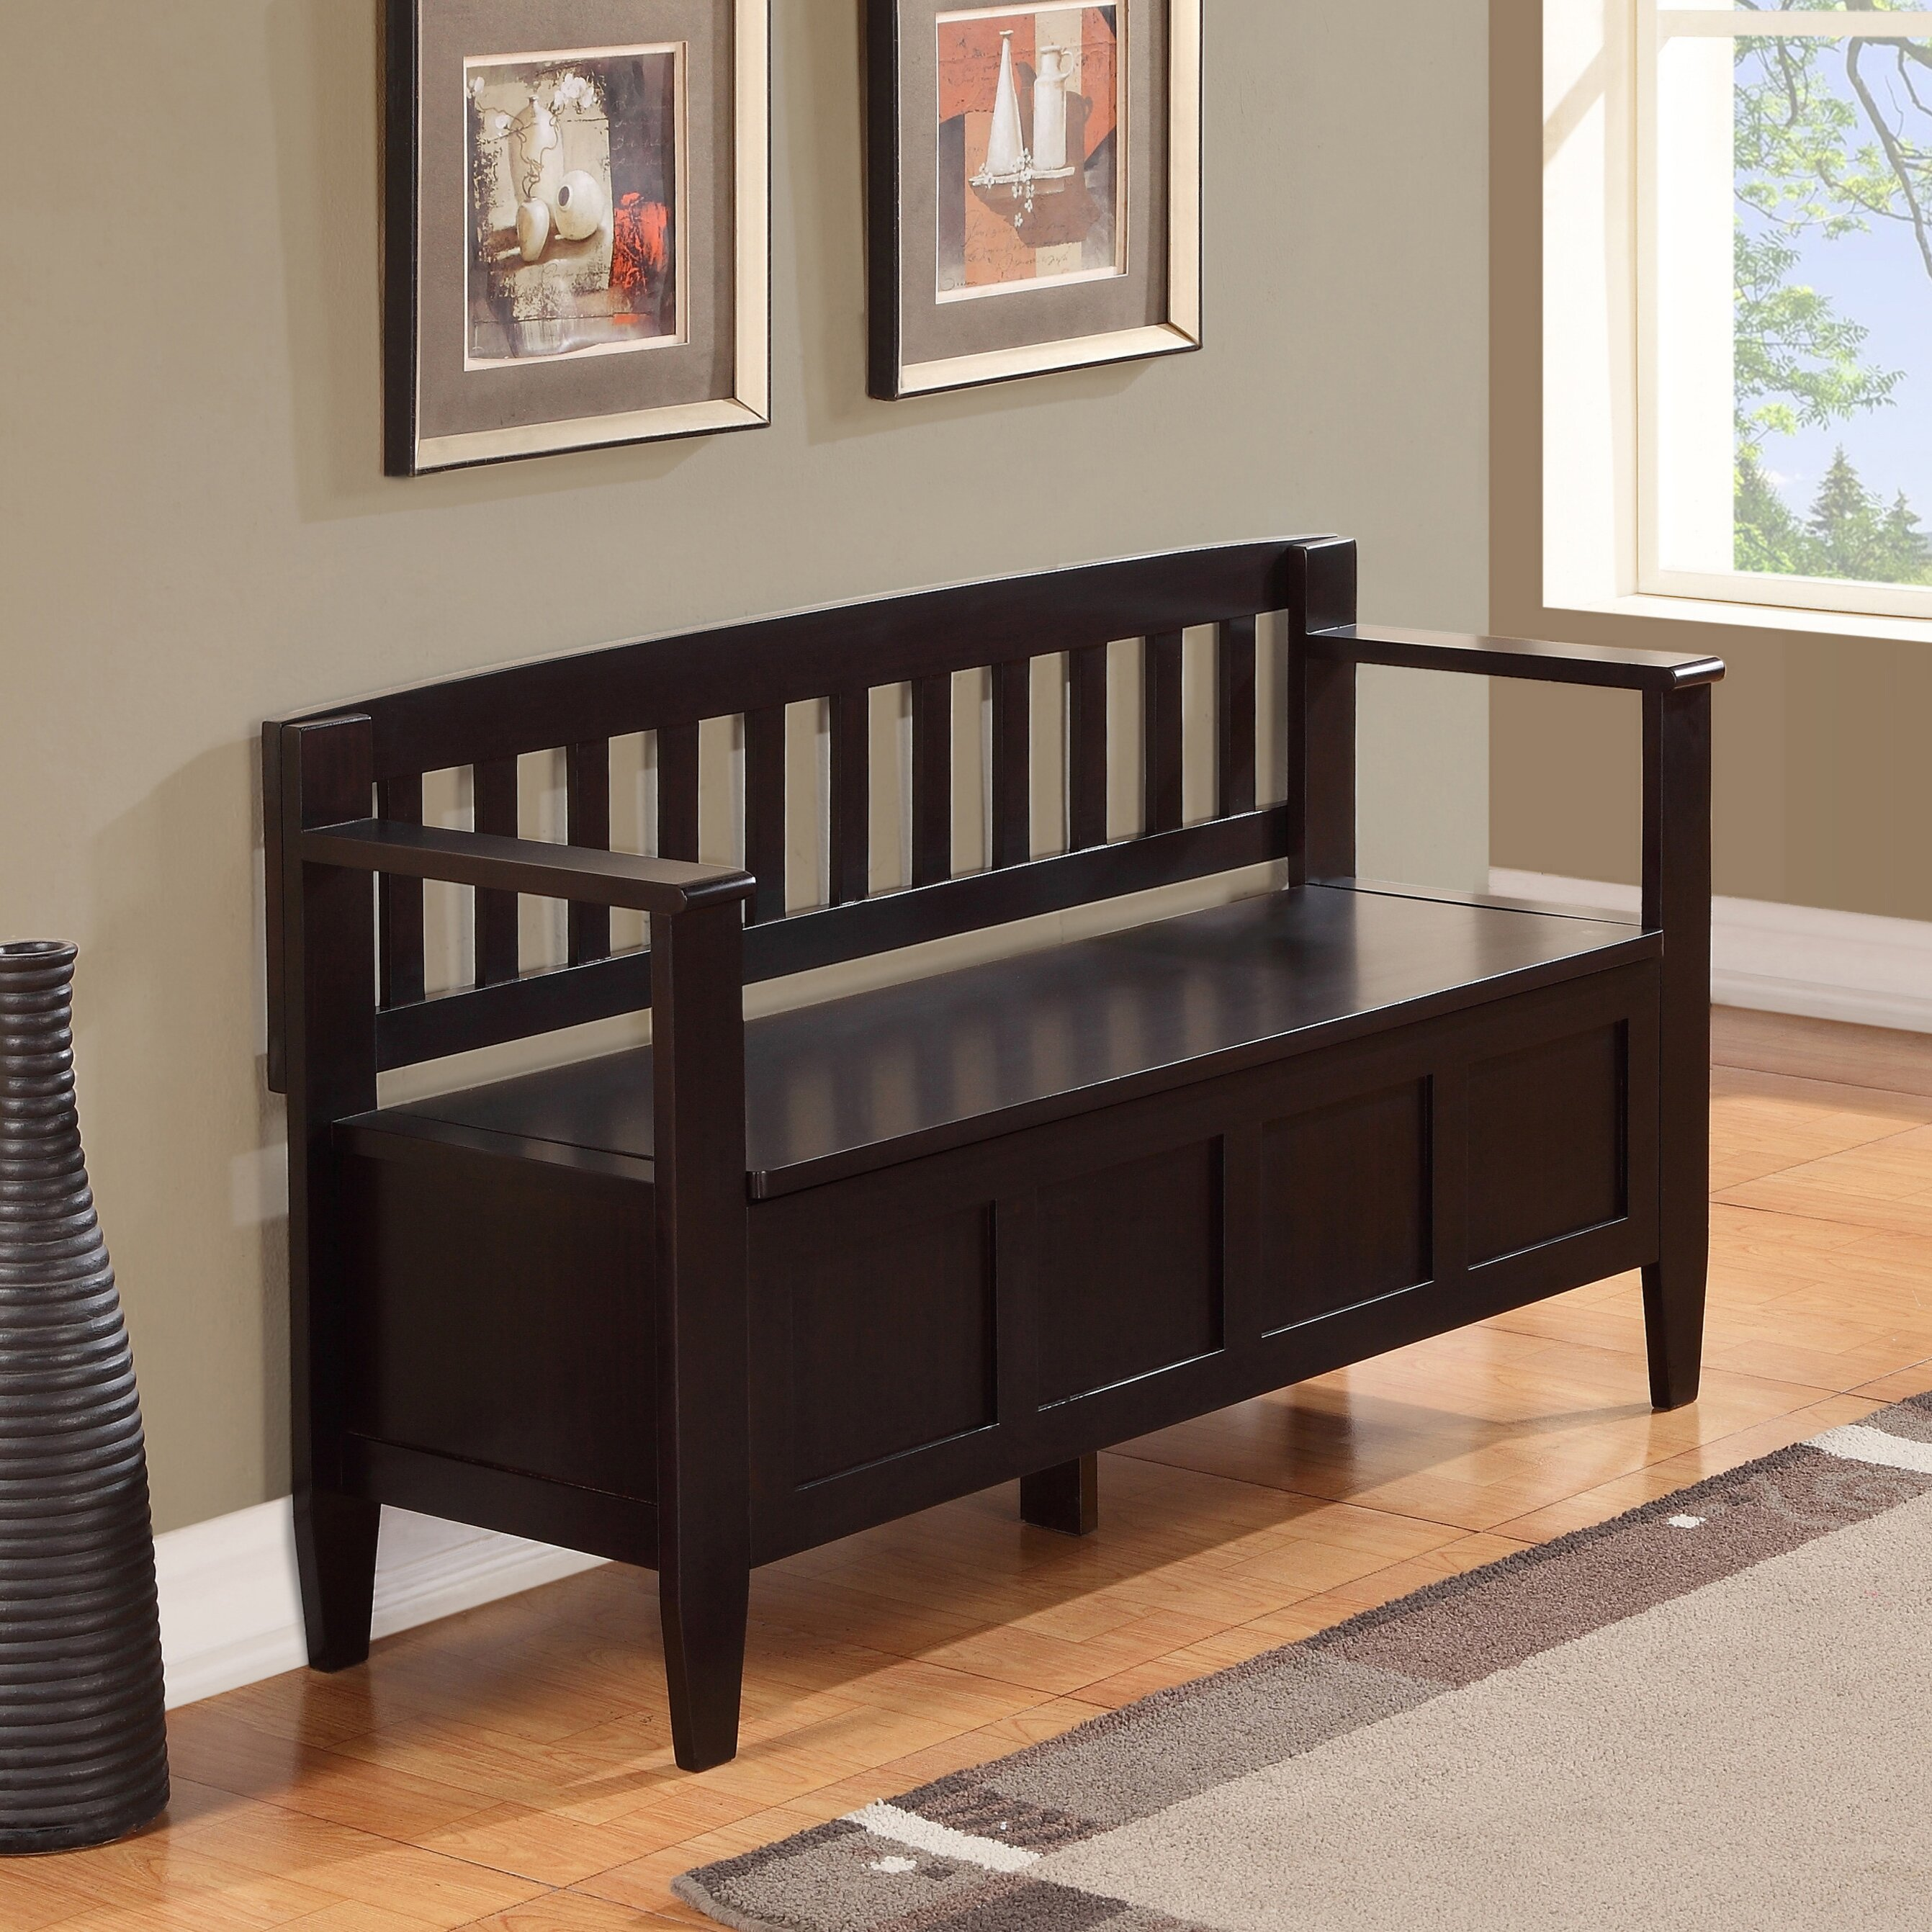 Foyer And Entryways Reviews : Simpli home brooklyn entryway storage bench reviews